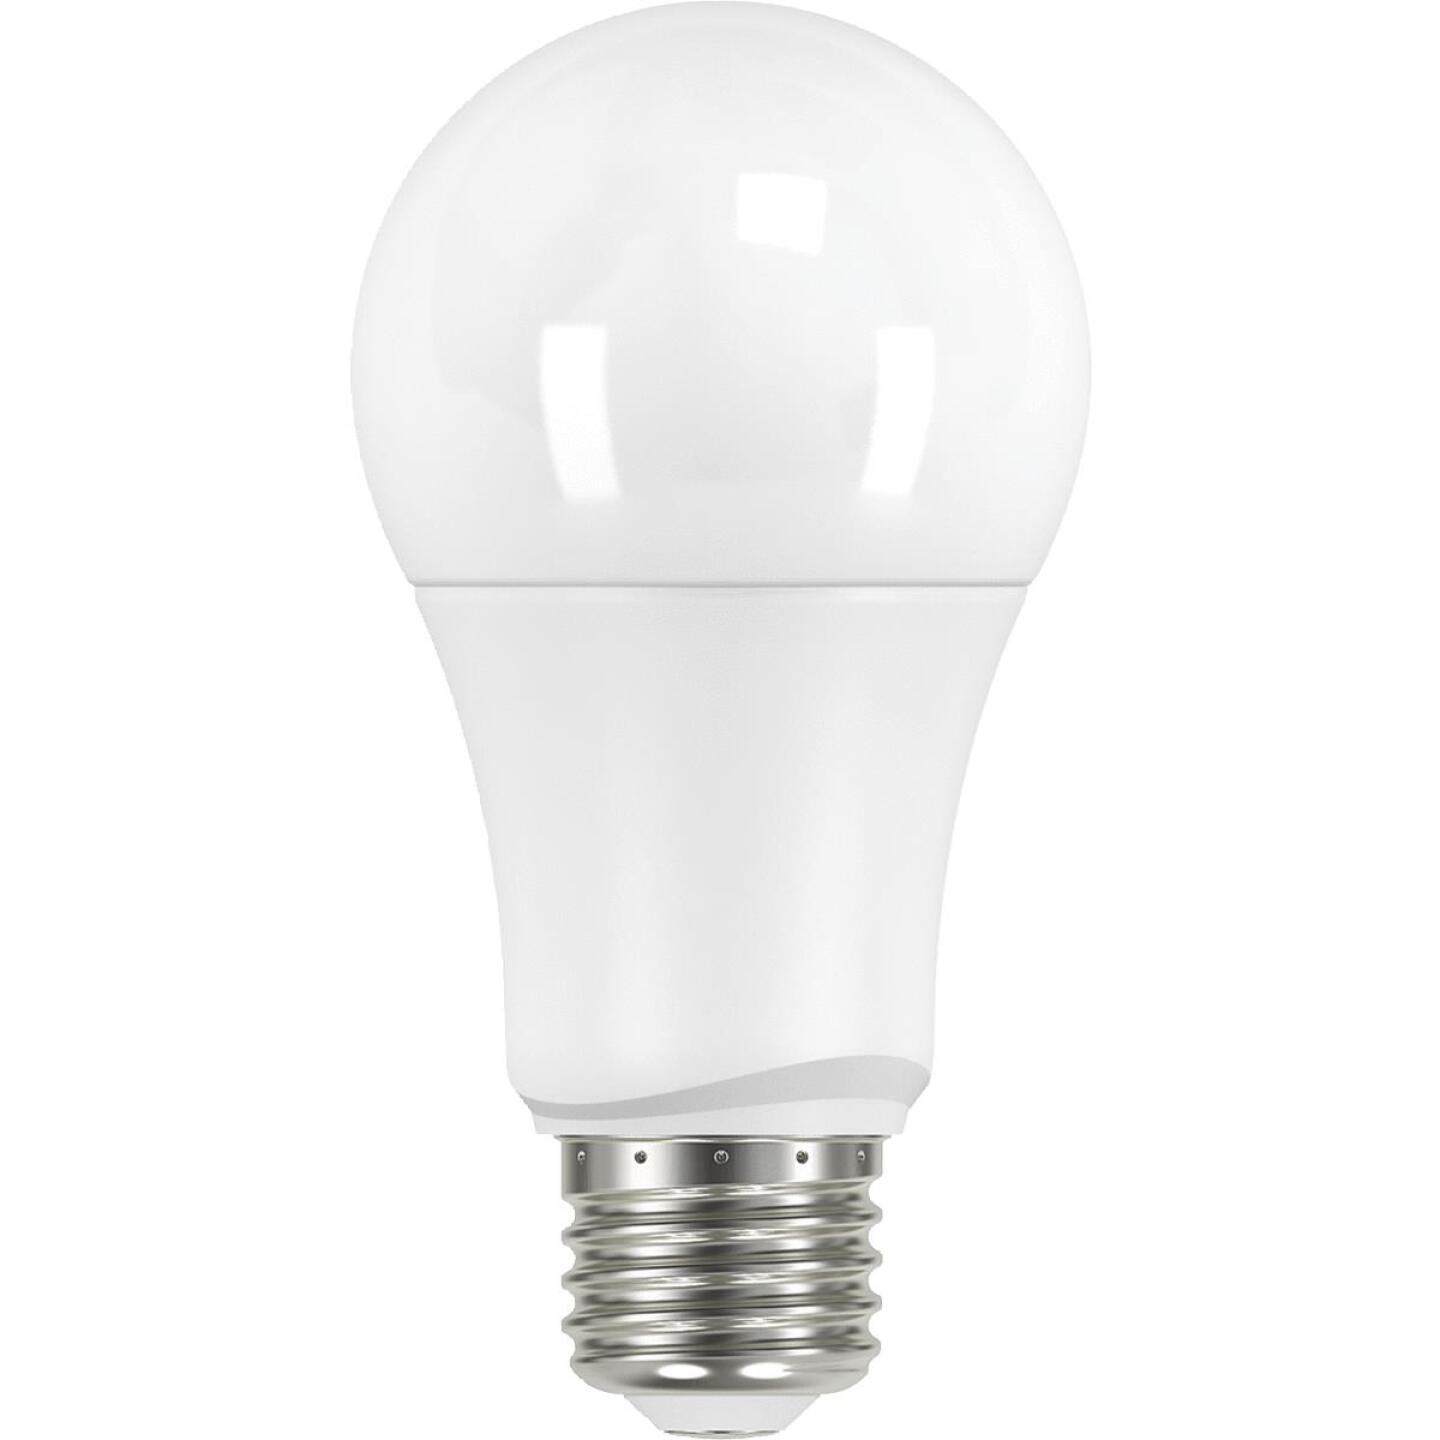 Satco 60W Equivalent Warm White A19 Medium LED Light Bulb (4-Pack) Image 1